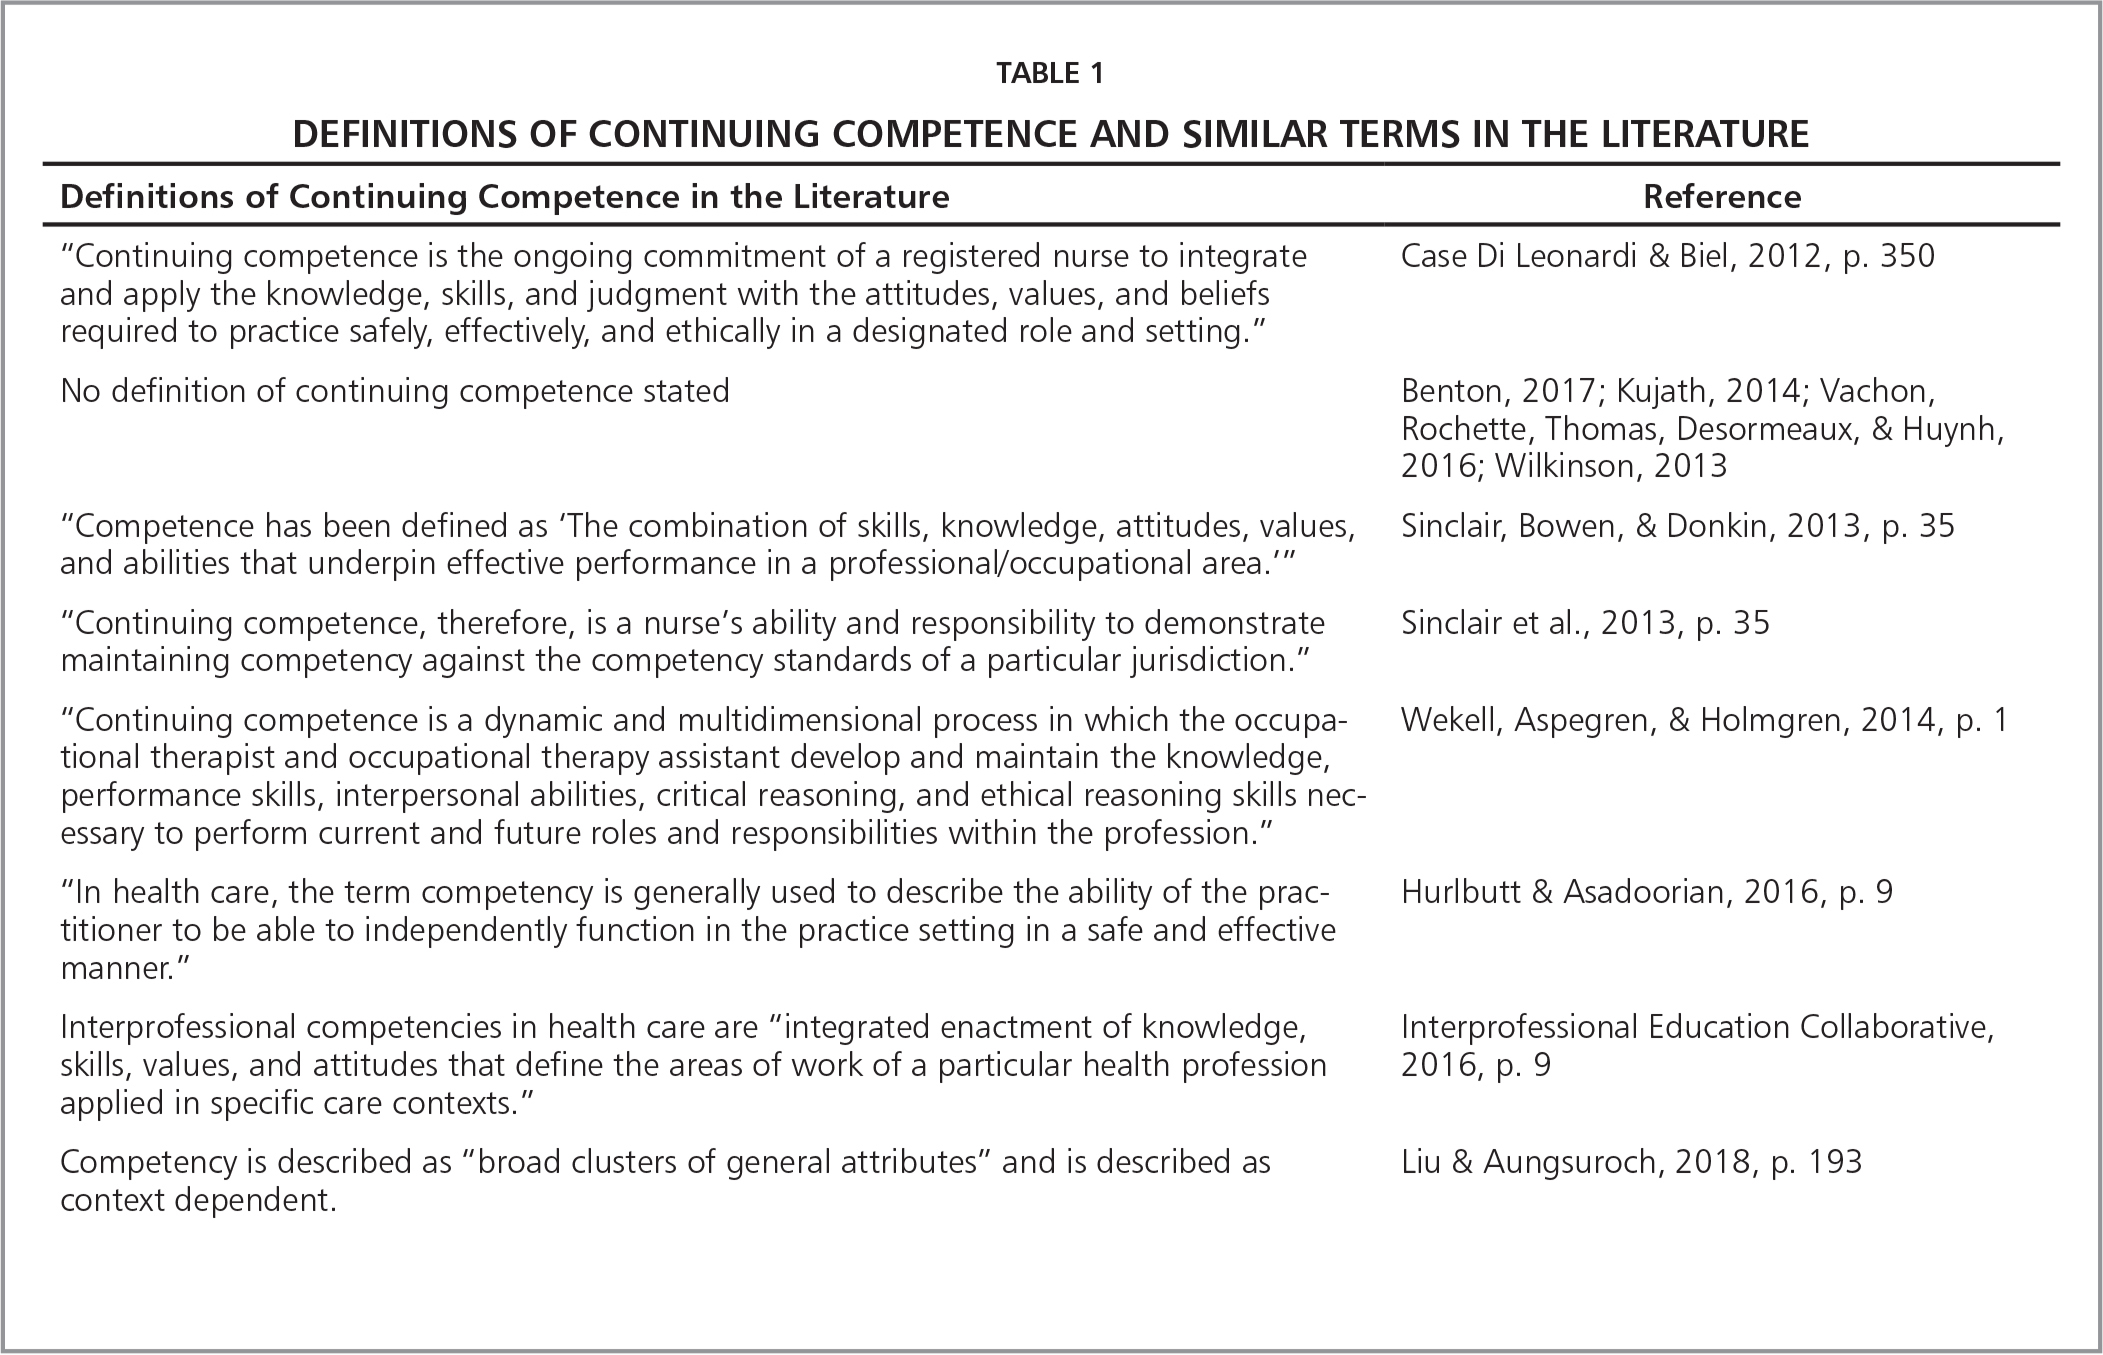 Definitions of Continuing Competence and Similar Terms in the Literature